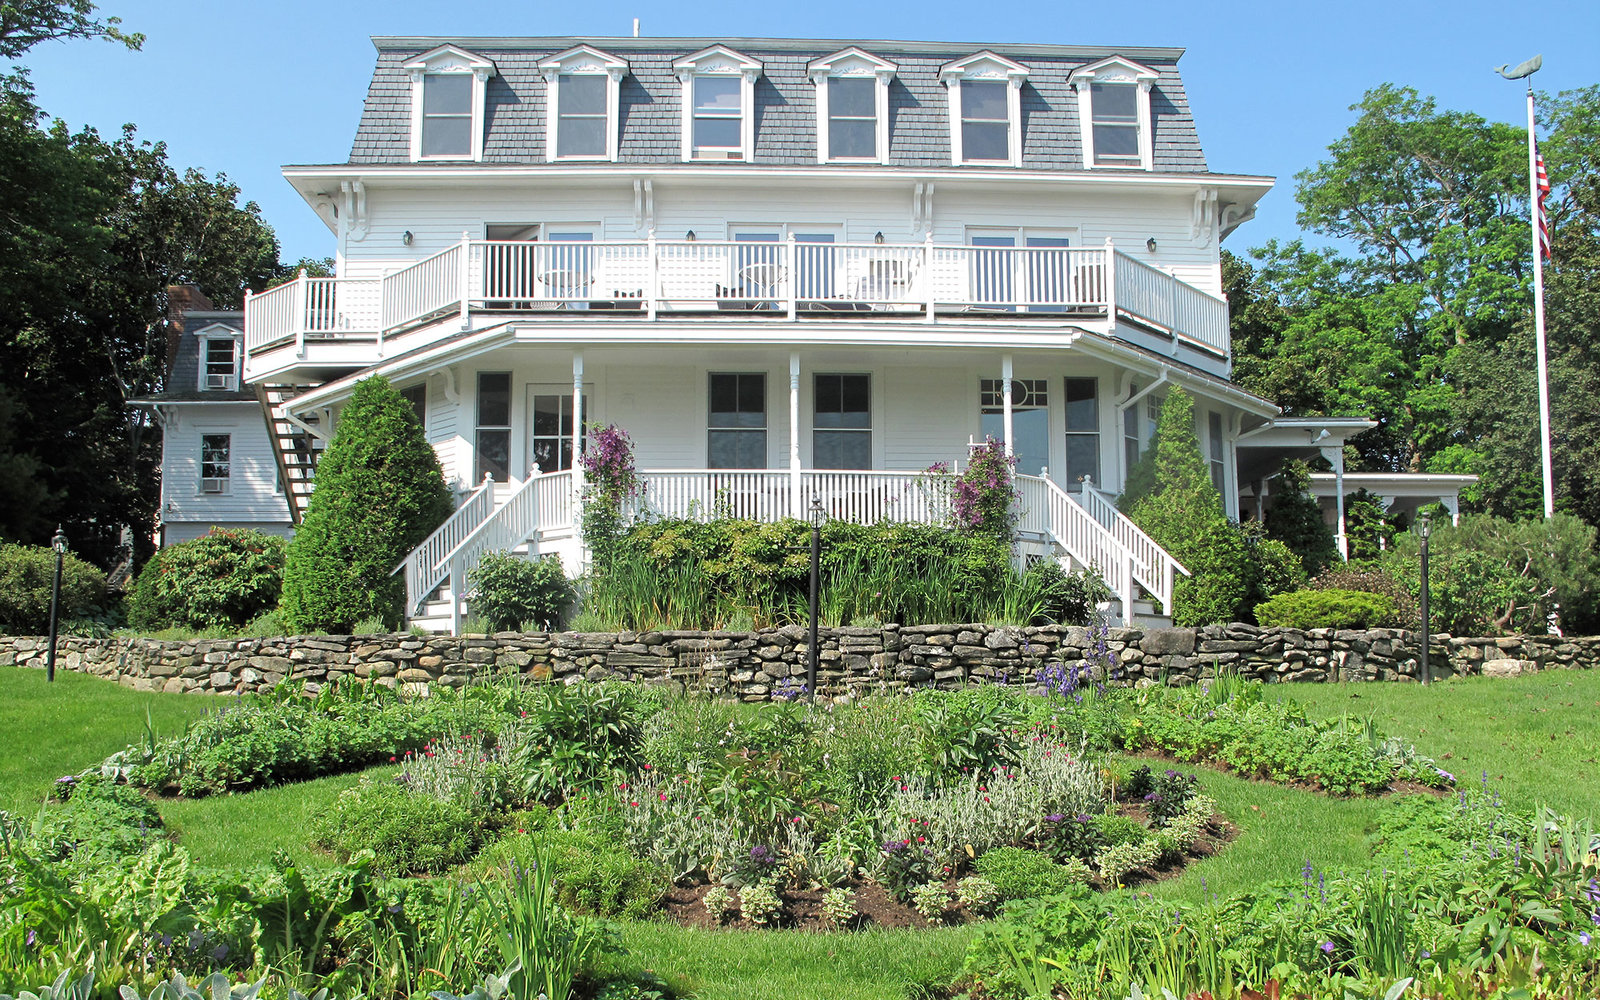 Maine: Camden Harbour Inn